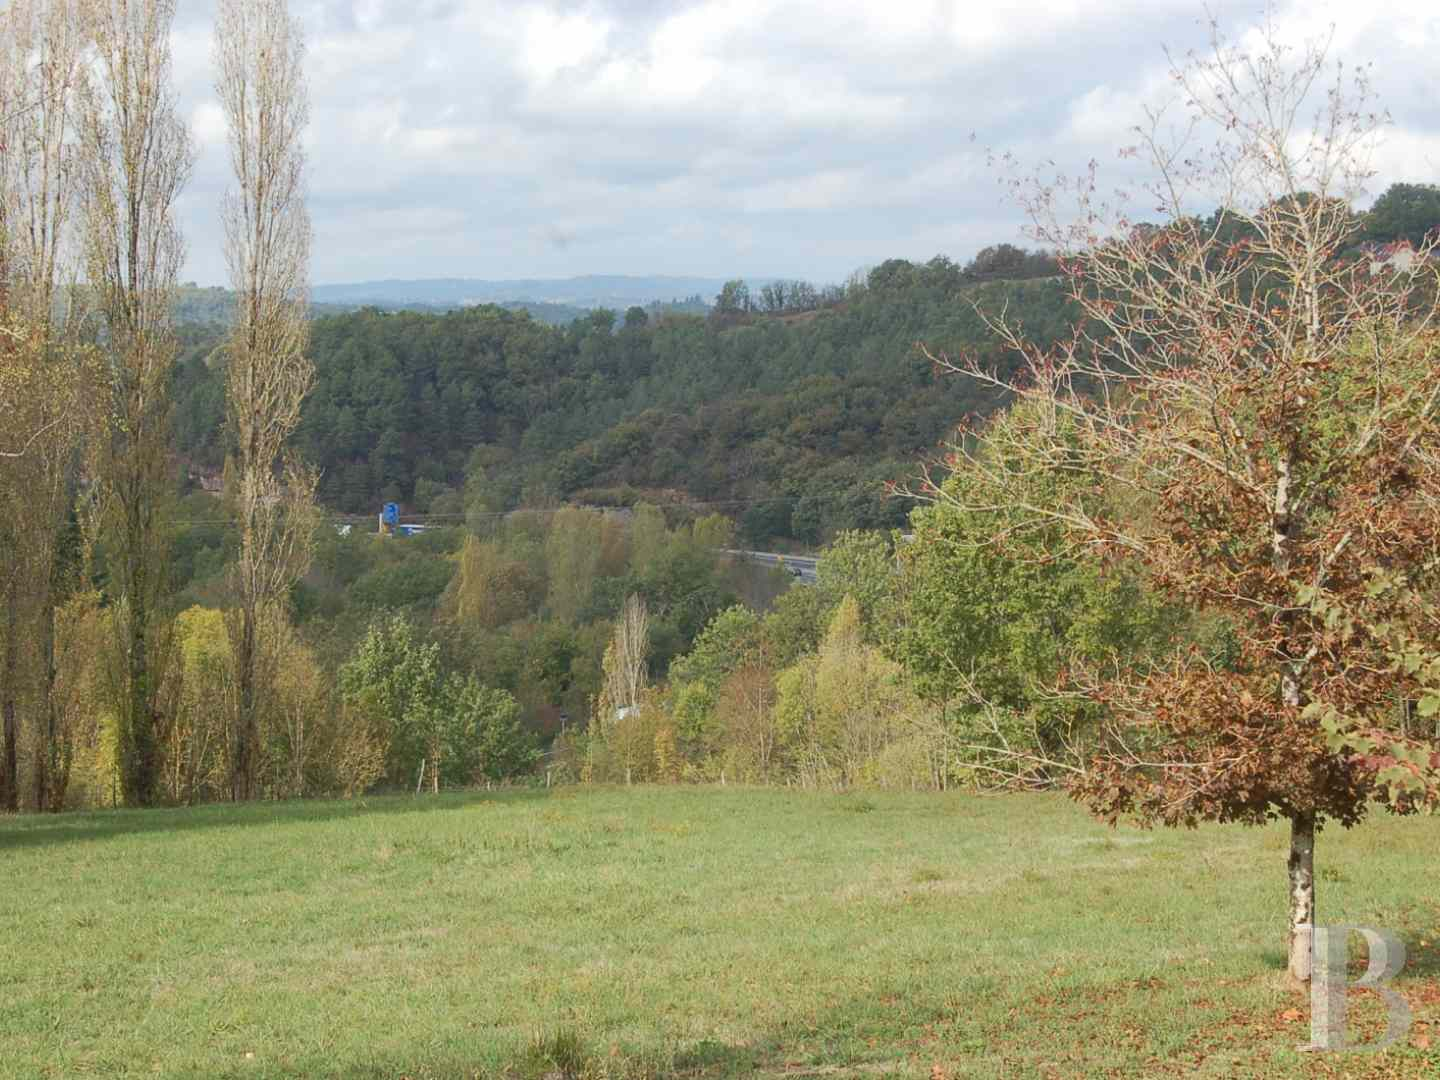 property for sale France limousin perigord quercy - 12 zoom